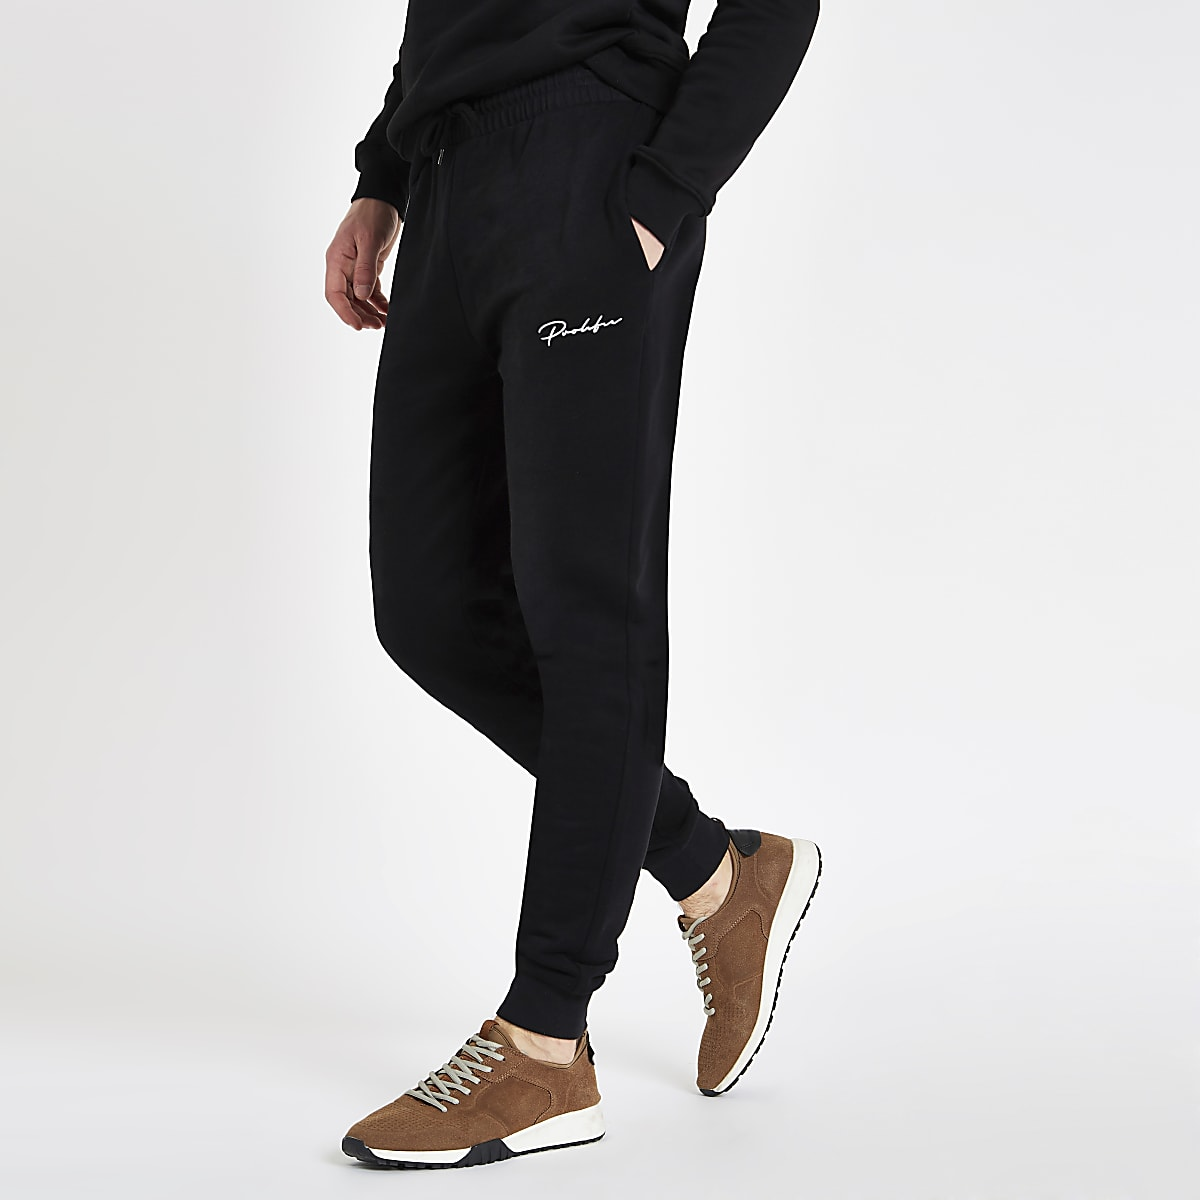 Black muscle fit Prolific joggers